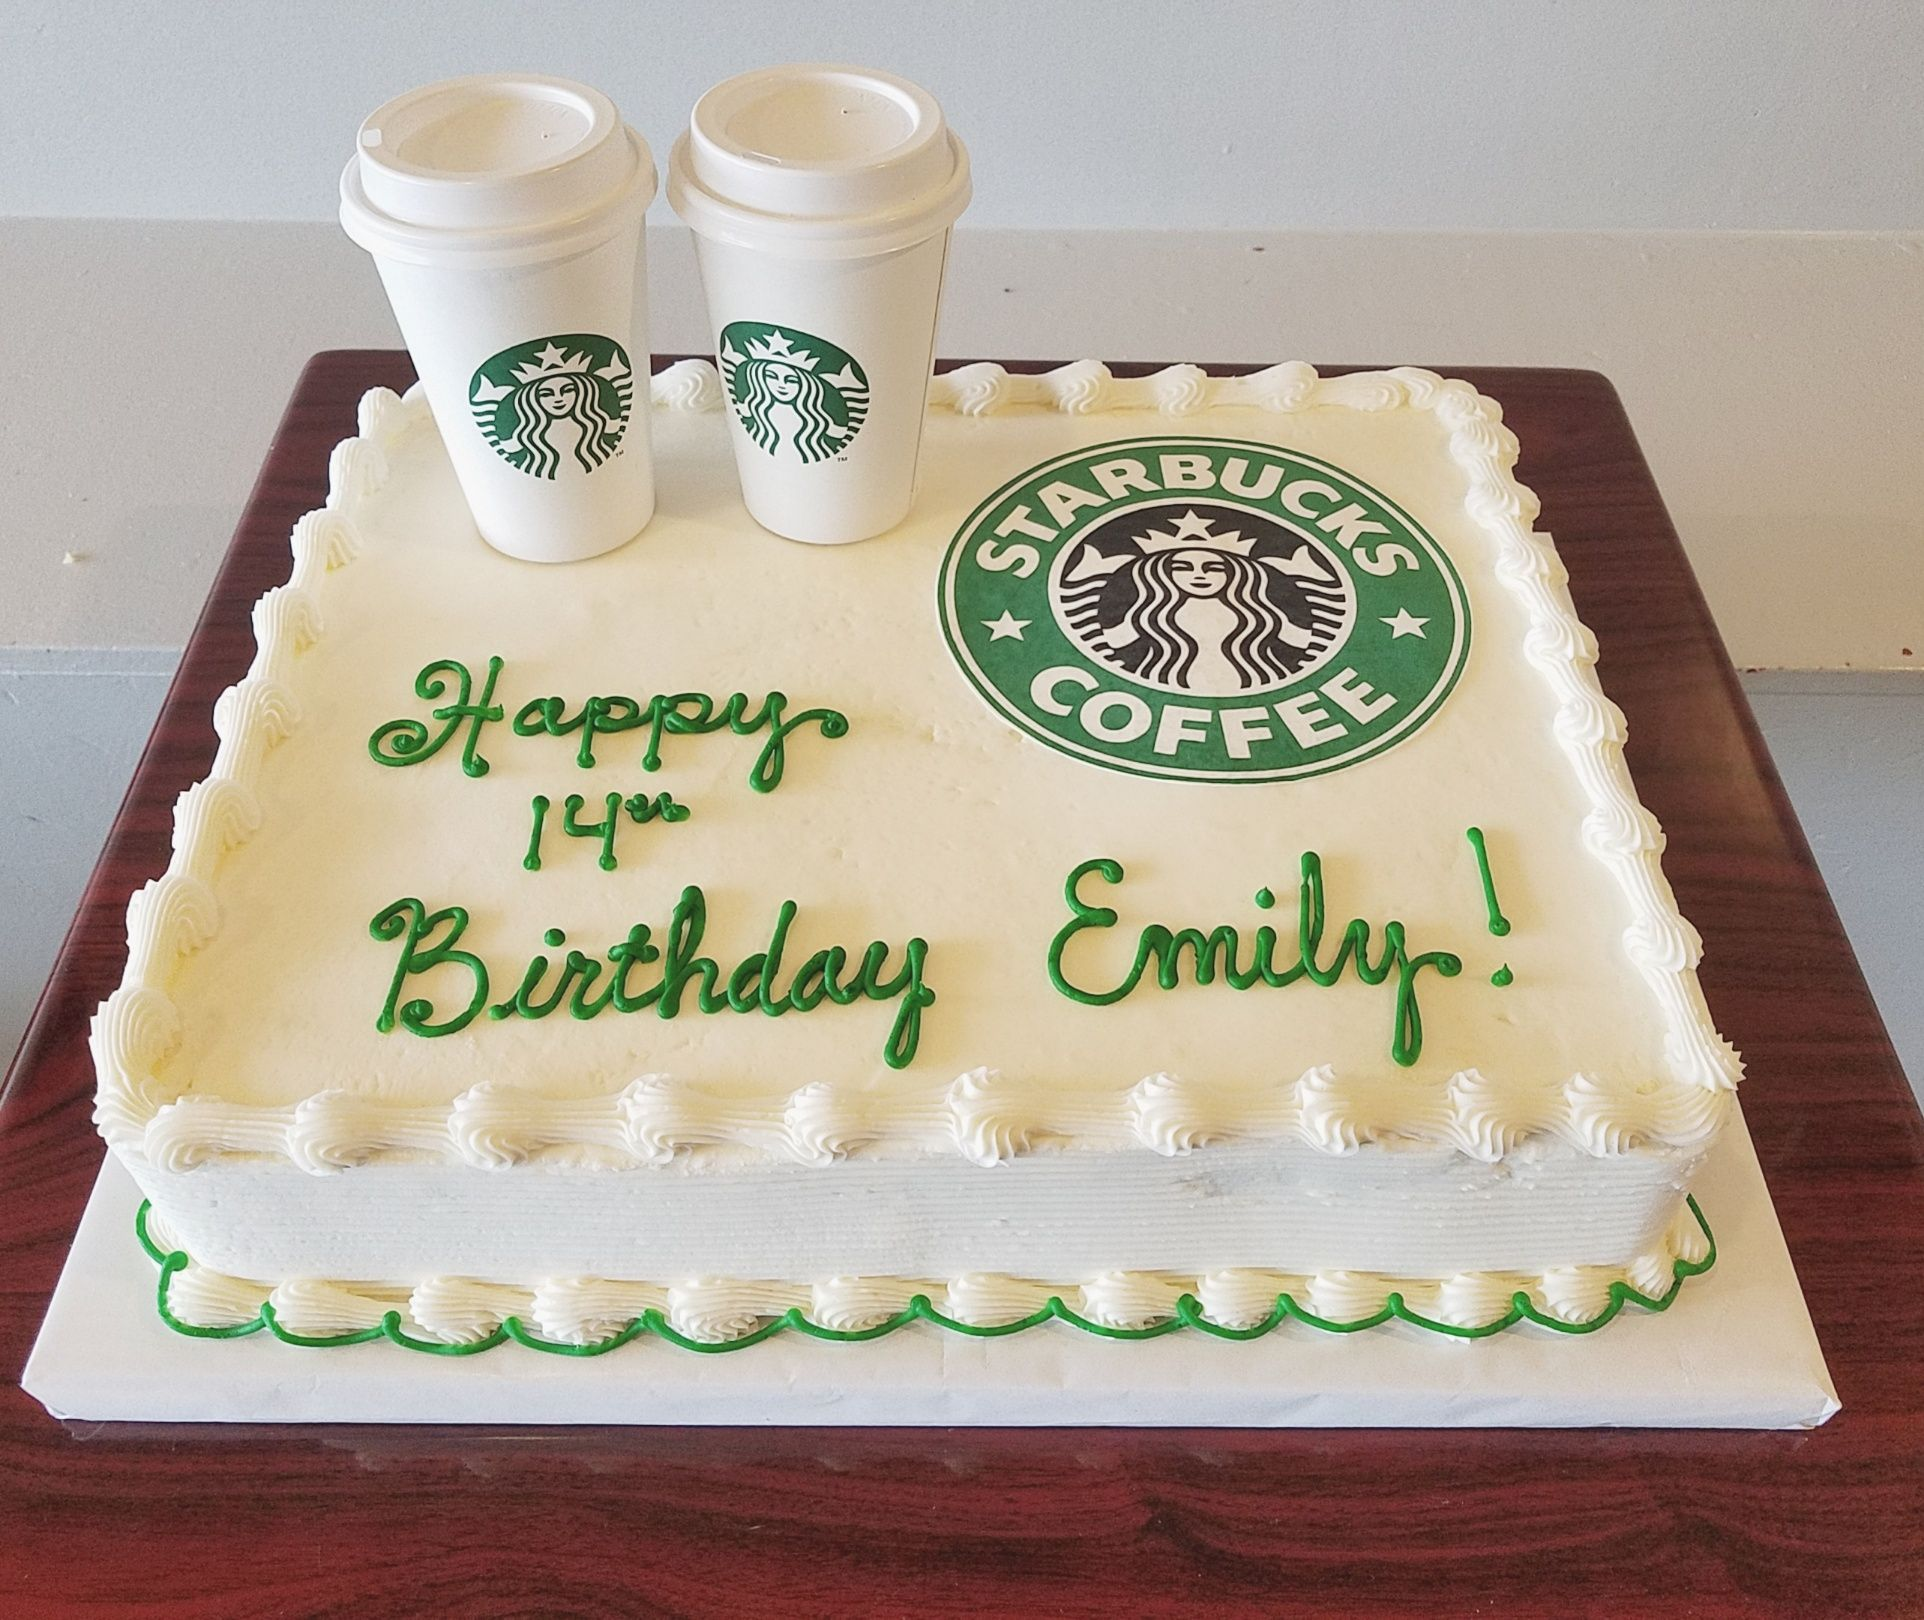 Outstanding Starbucks Birthday Sheet Cake Adrienne Co Bakery With Images Funny Birthday Cards Online Unhofree Goldxyz